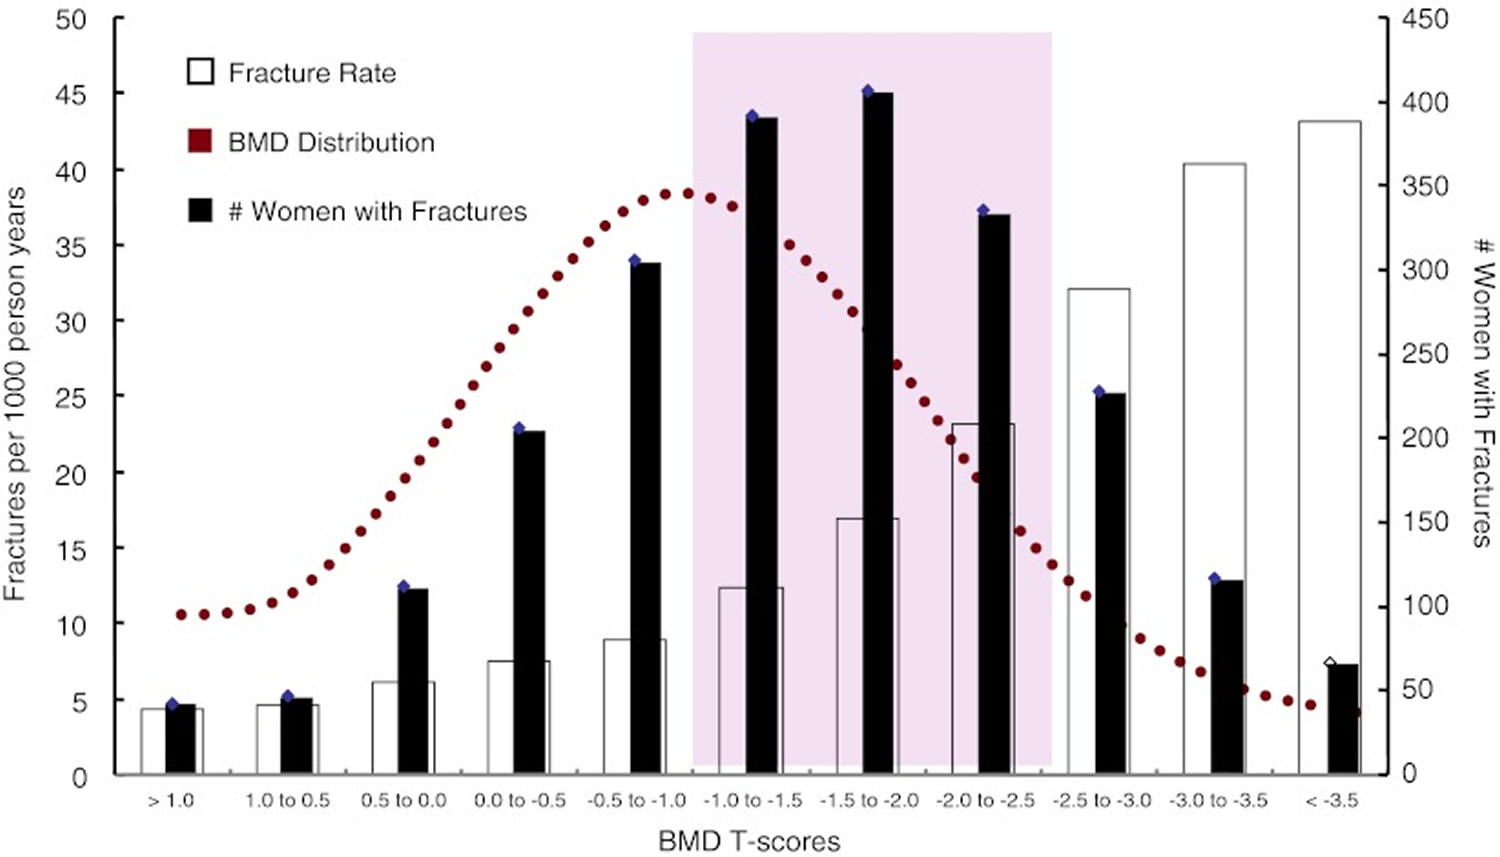 fracture rates according to bone mineral density